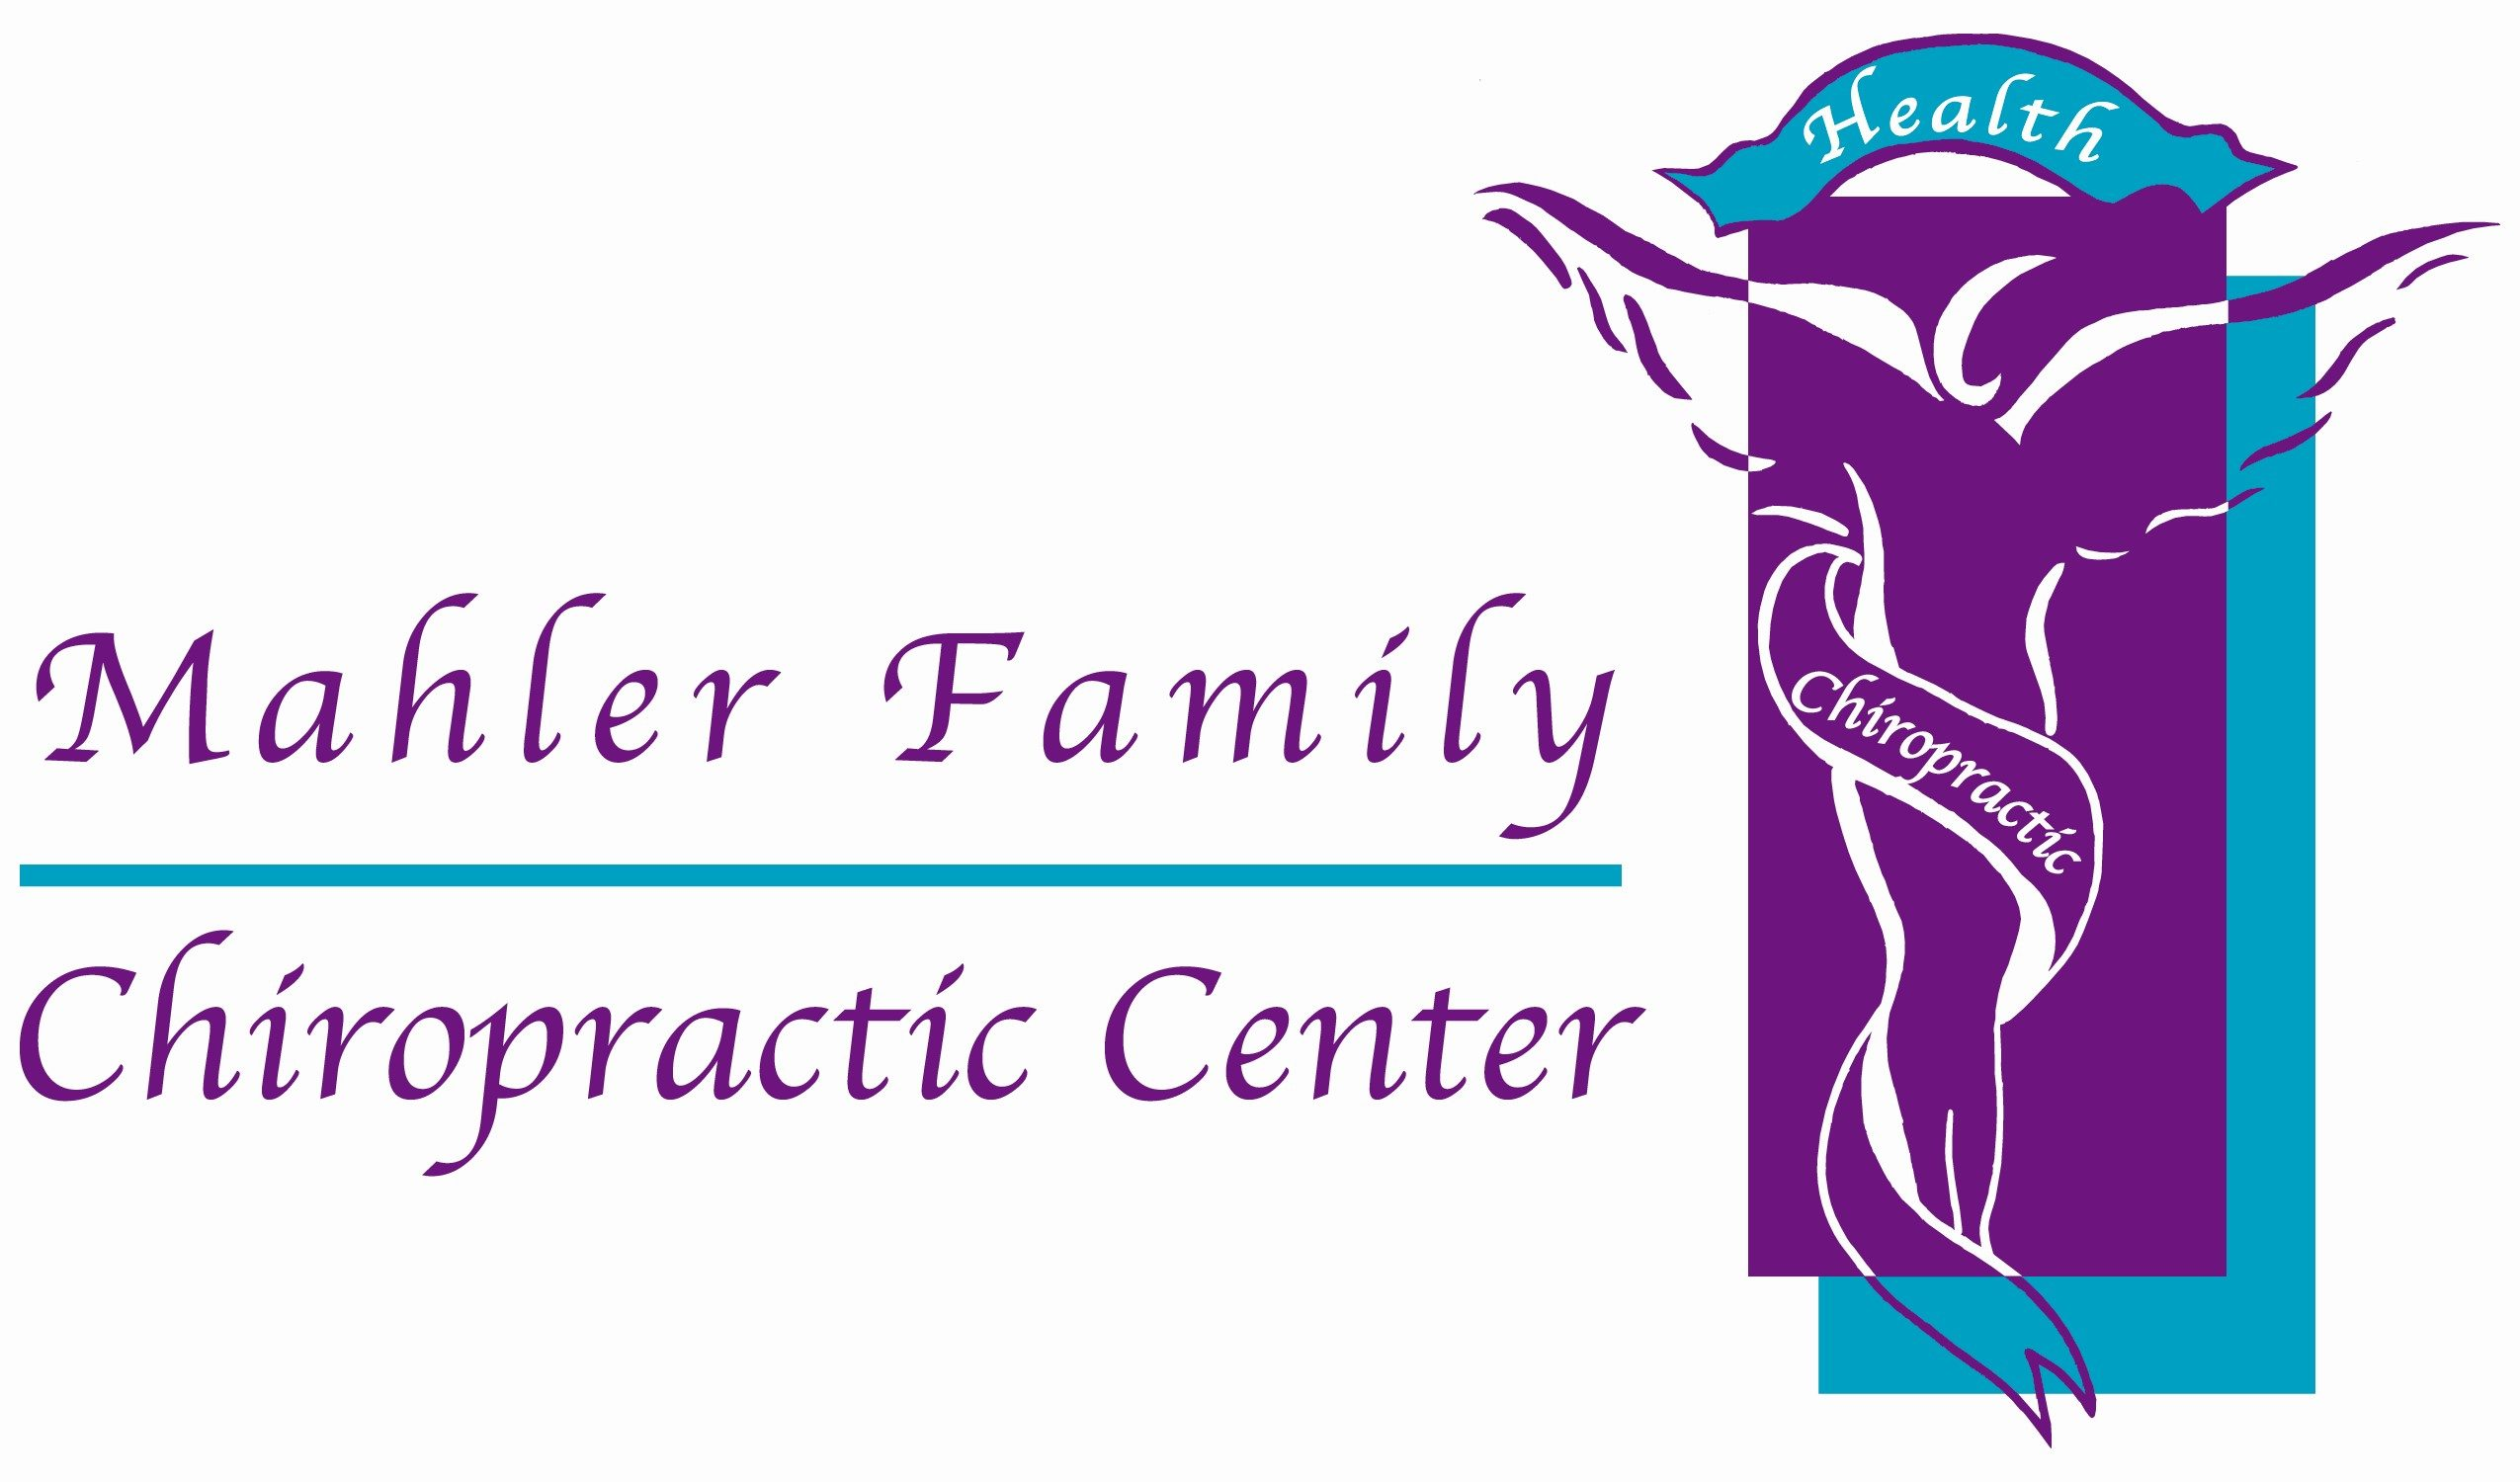 Mahler Family Chiropractic Center